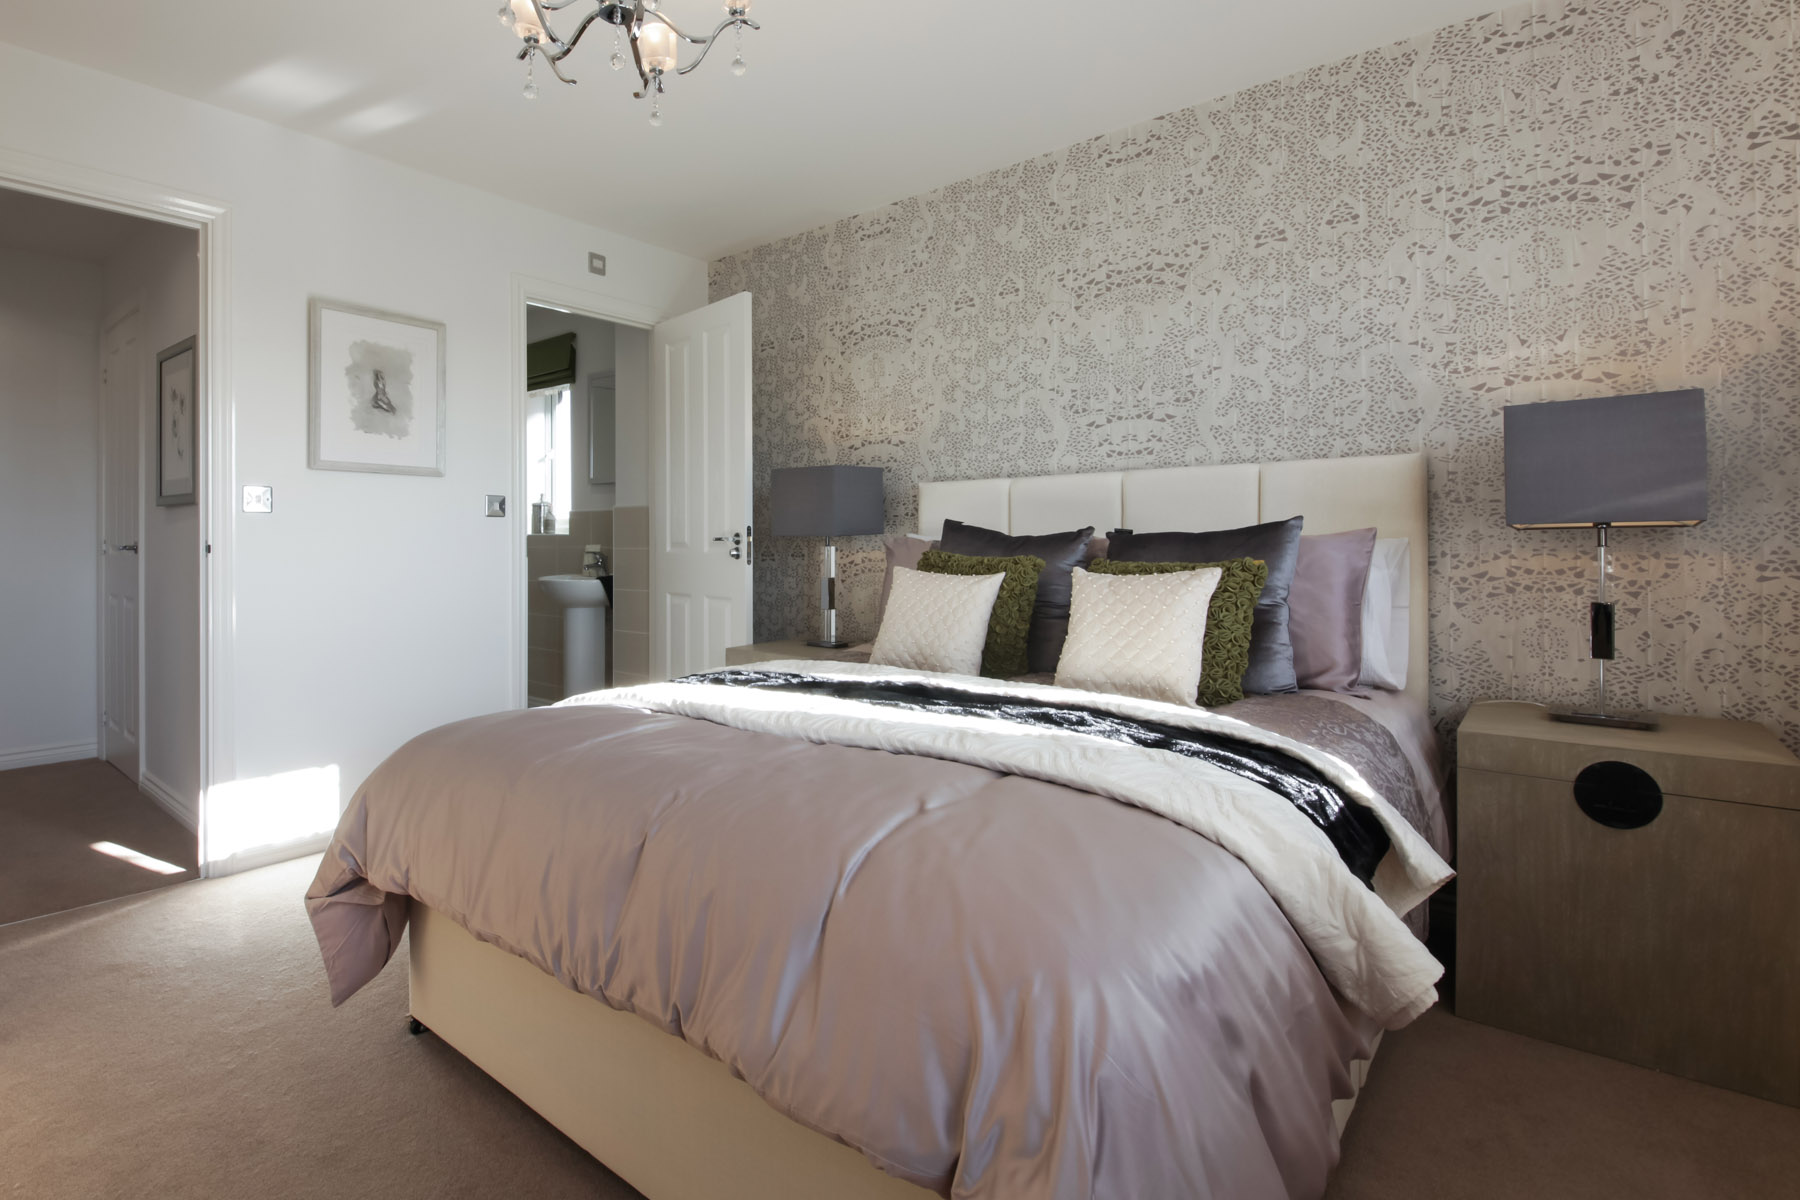 Lavenham bedroom with ensuite in view